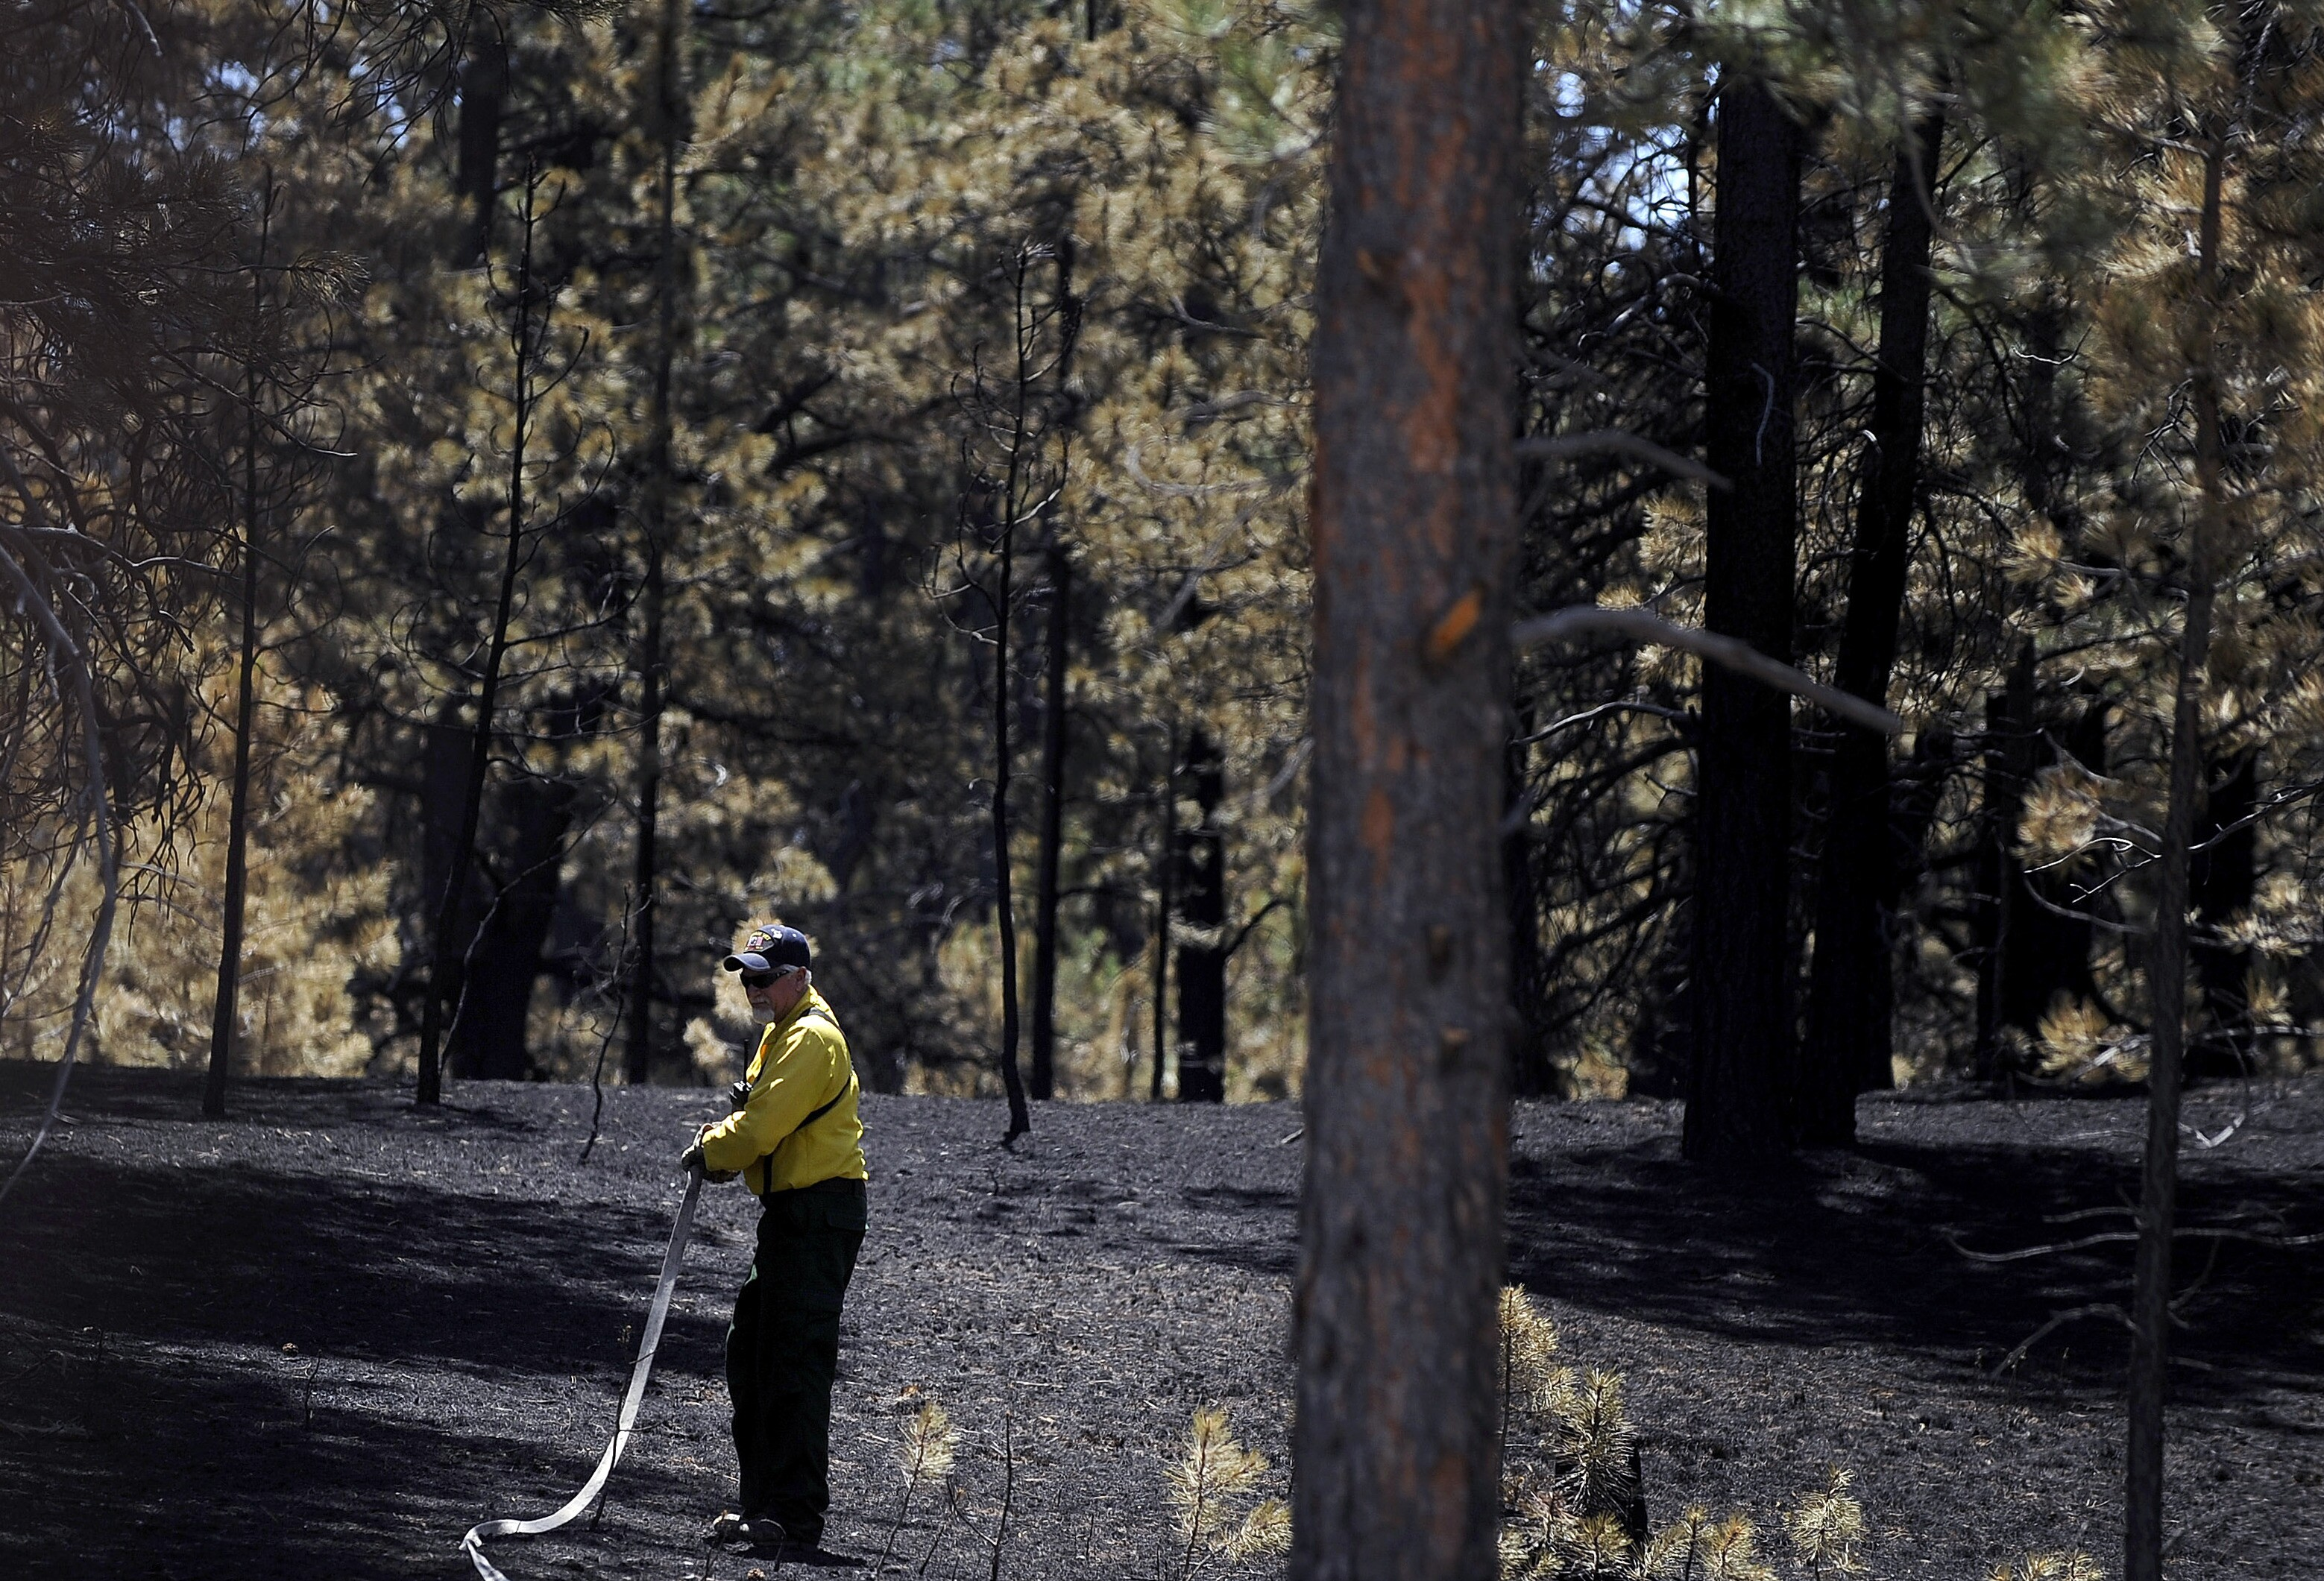 Expert warns terrorists may be setting wildfires across American West